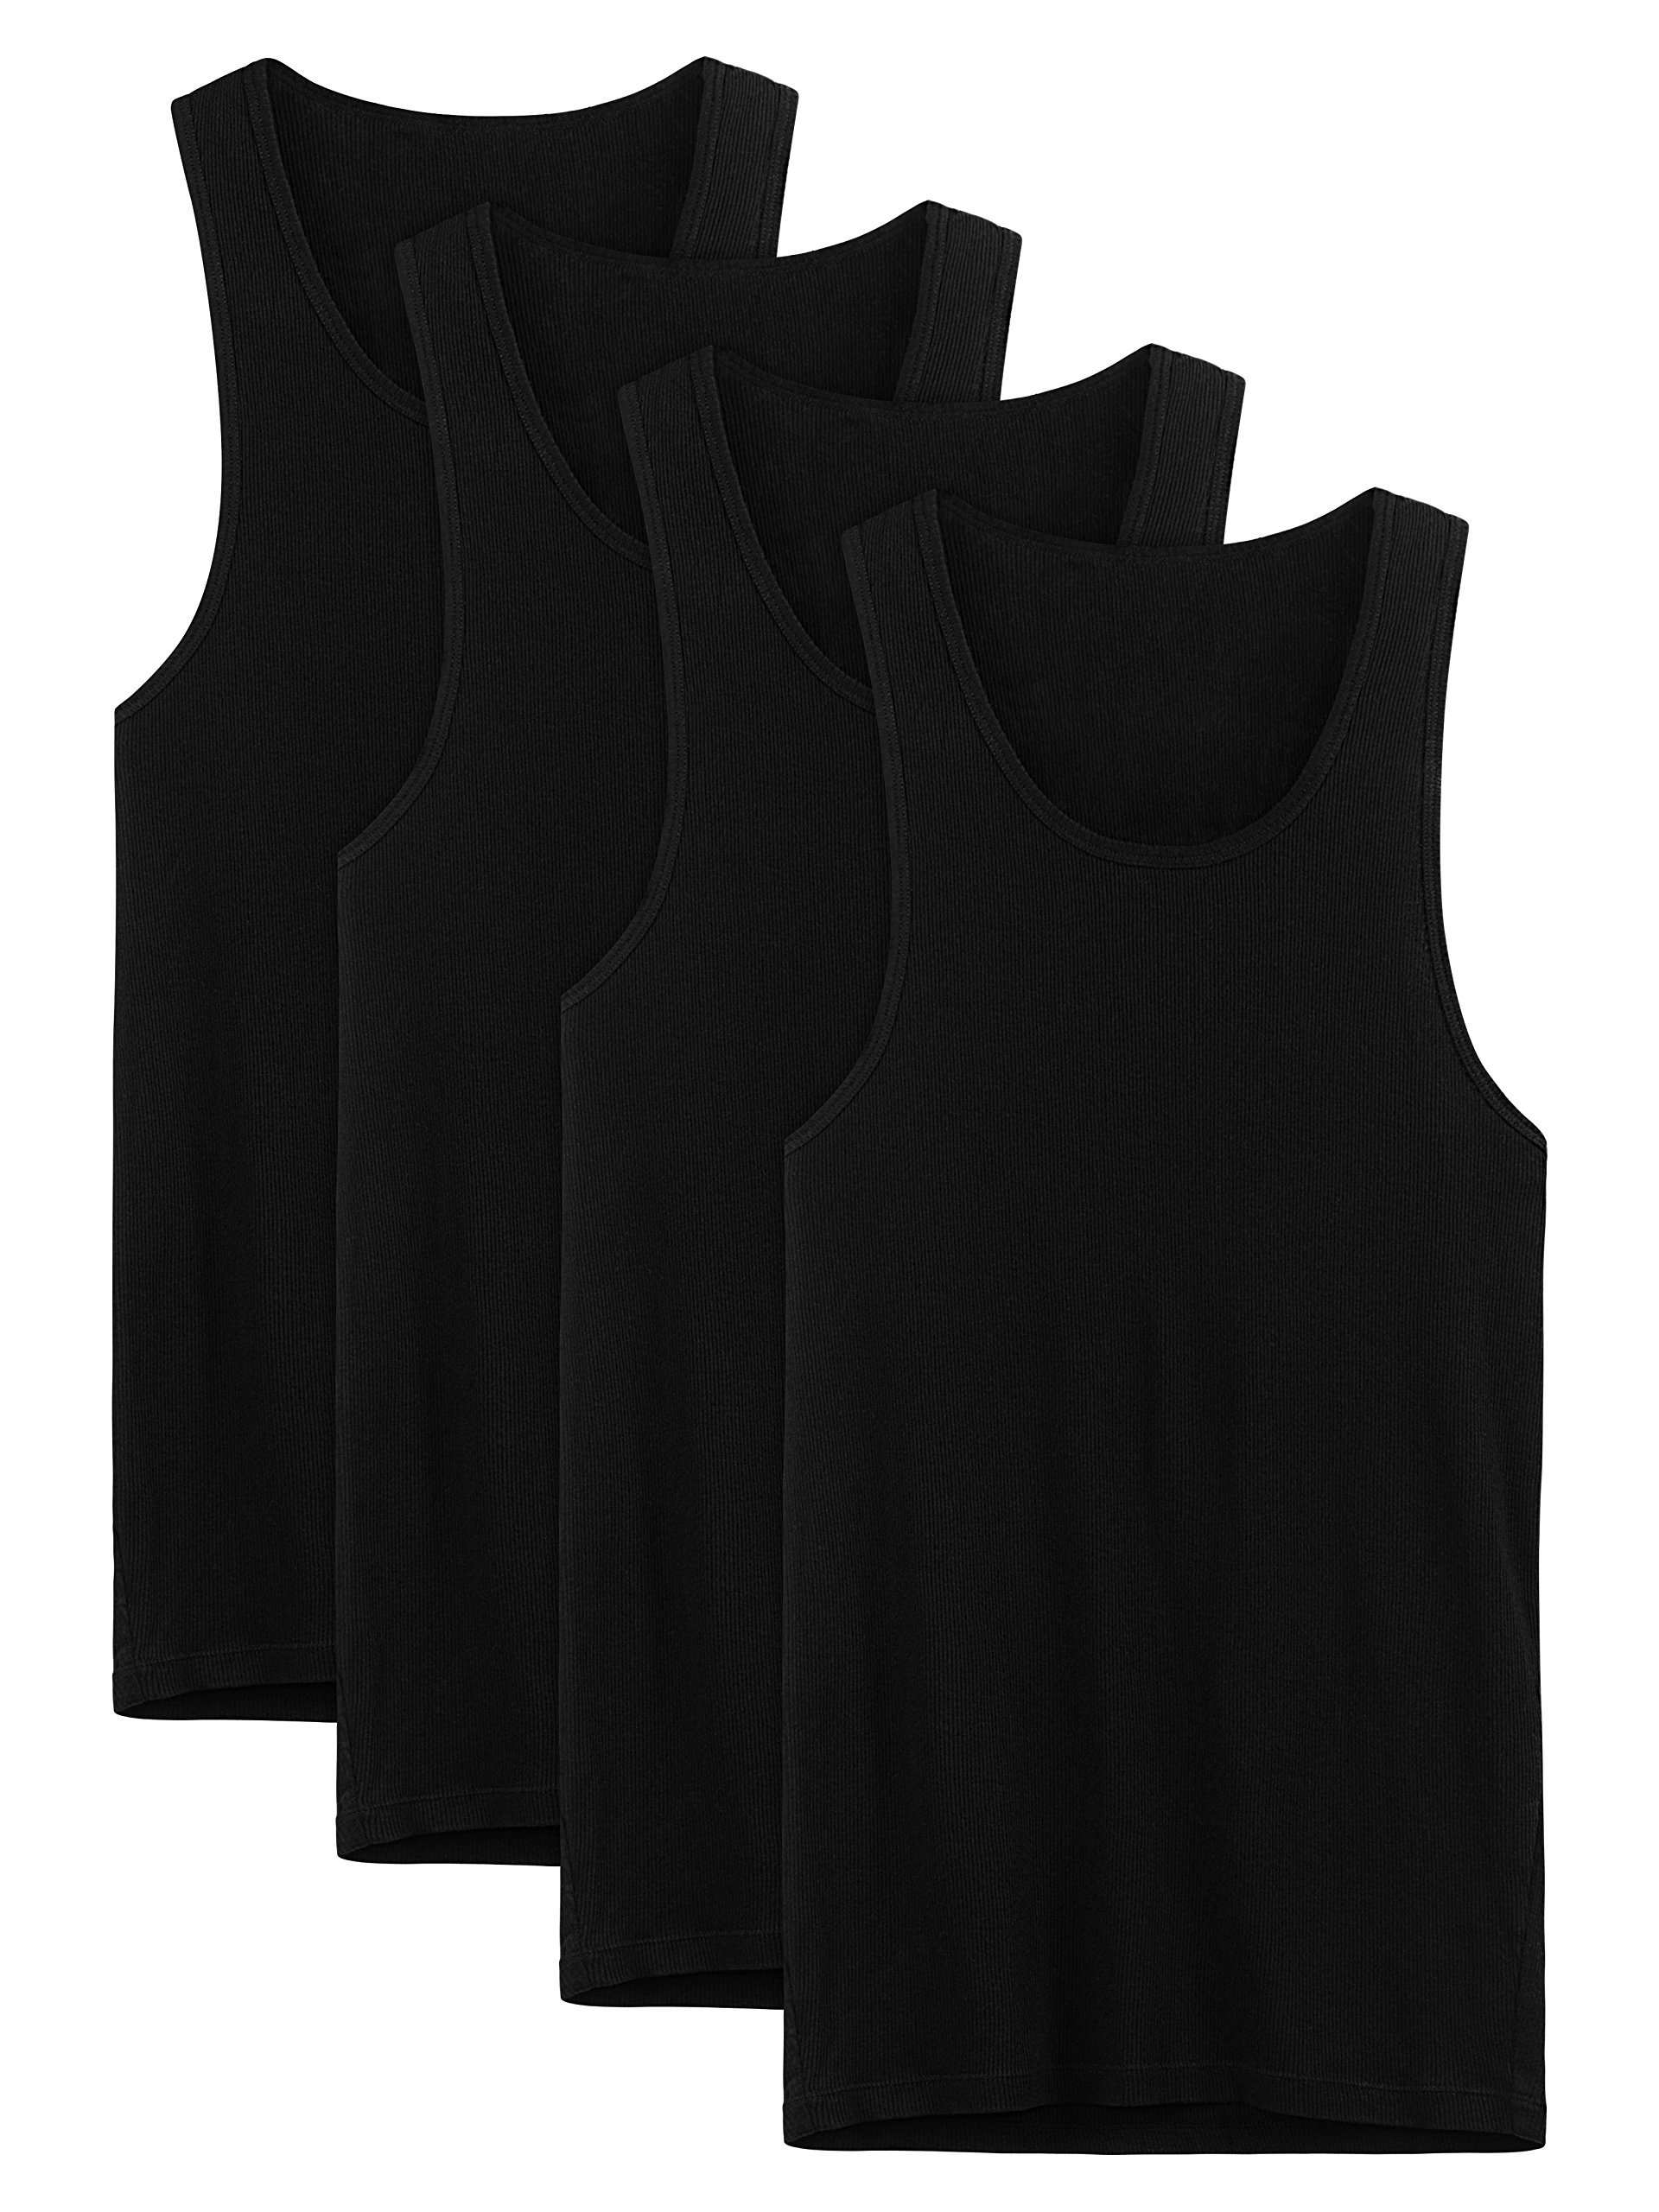 David Archy Men's 4 Pack Cotton Rib Tank Top A-Shirts Sleeveless Workout Undershirts(Black,S)